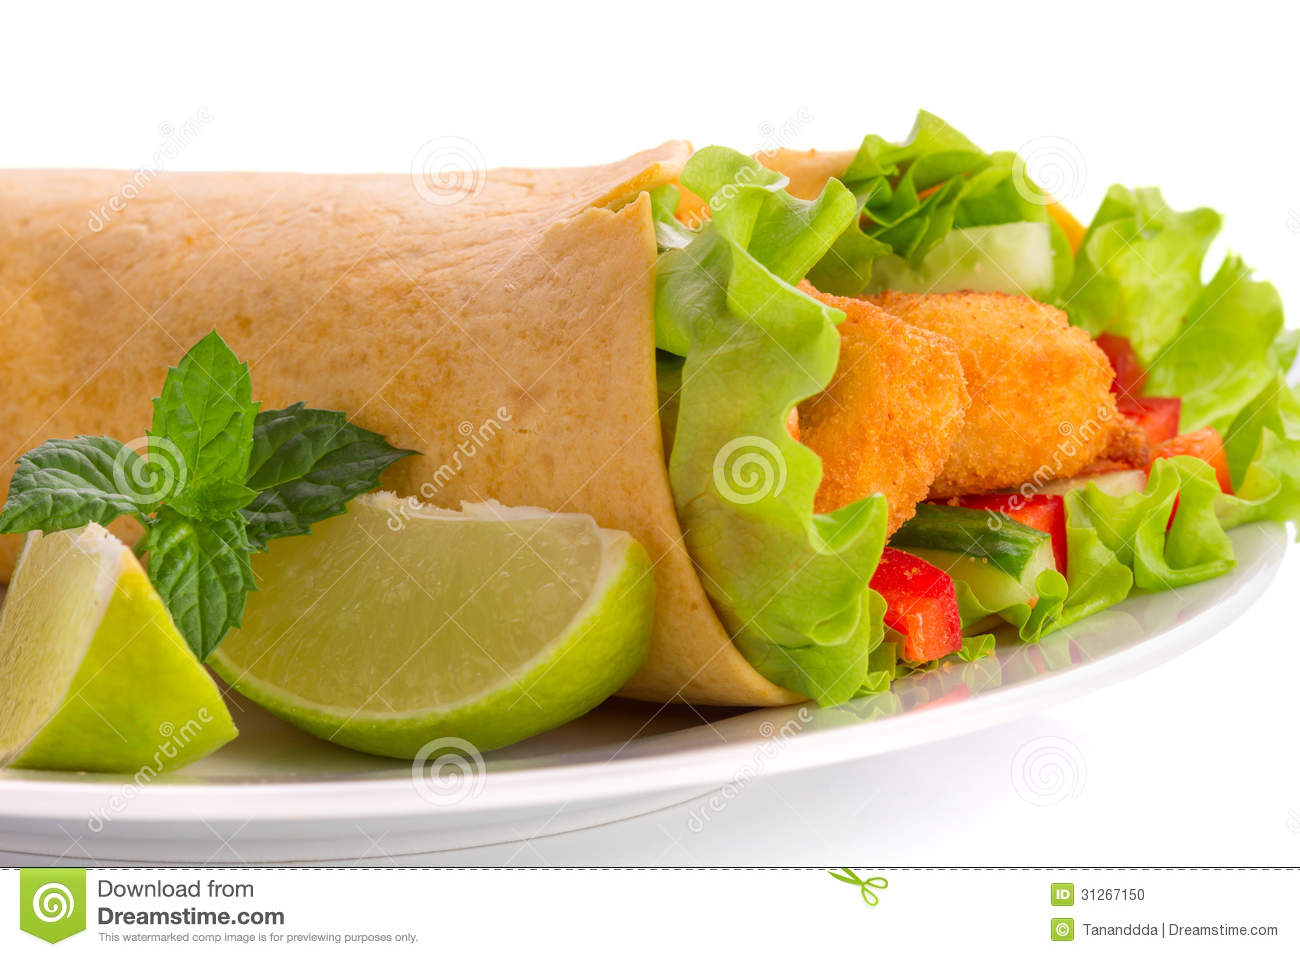 Chicken Tortilla Wrap With Lime And Chili Sauce Stock Photo - Image ...